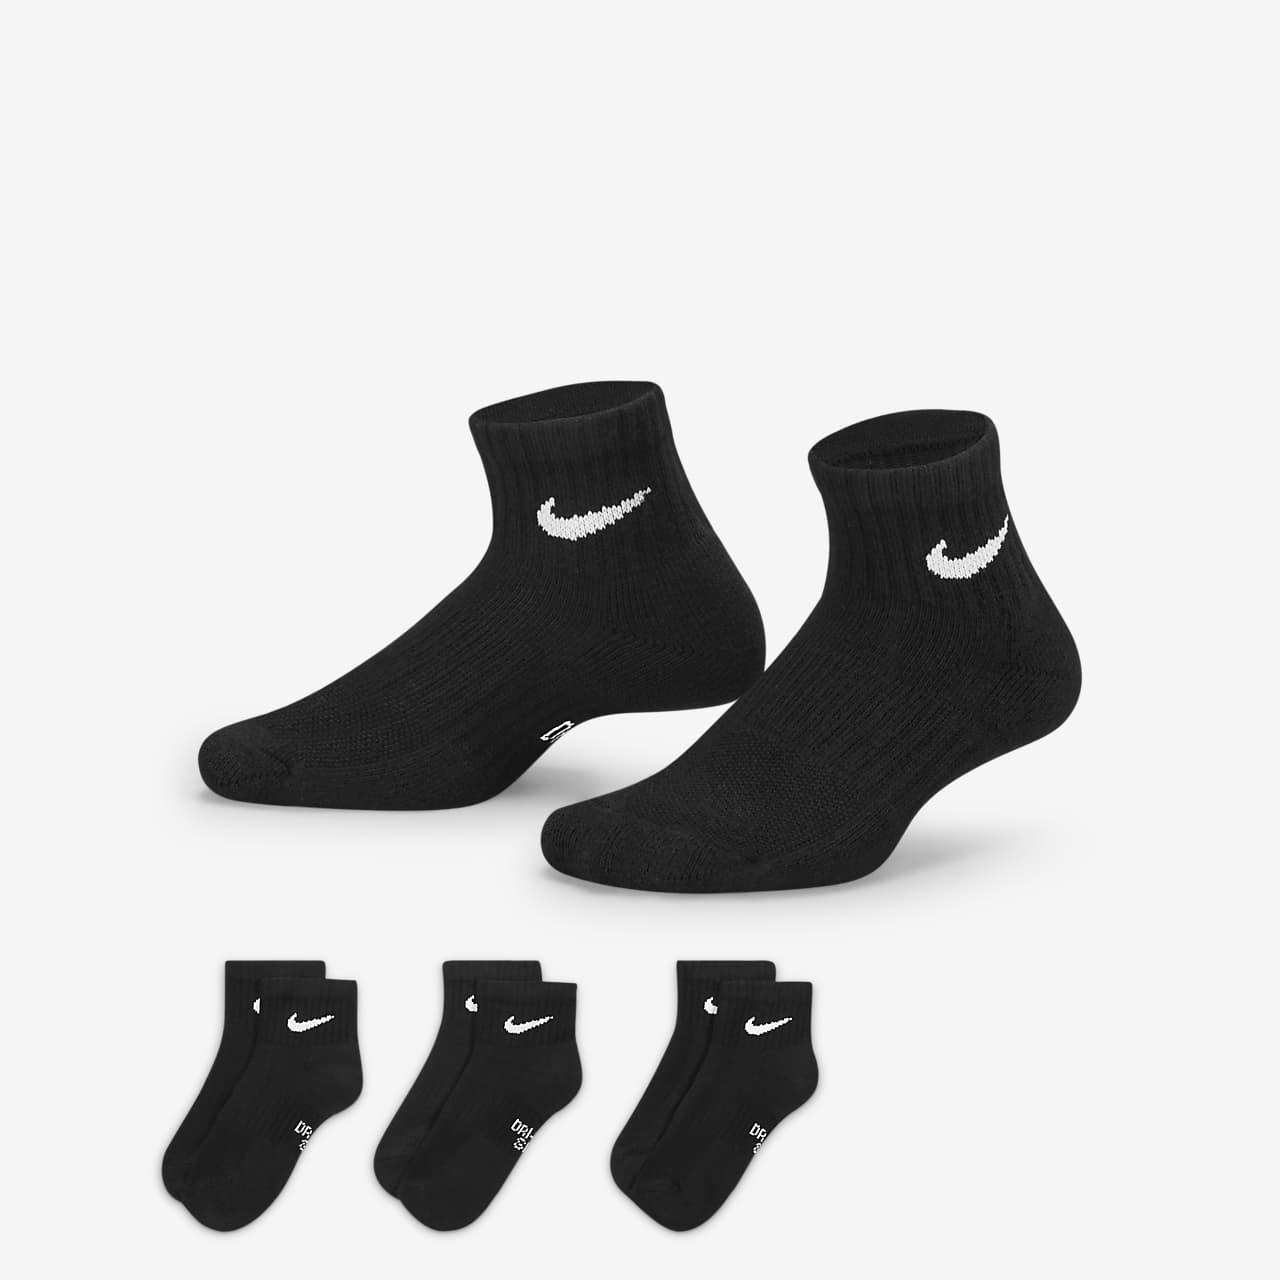 Nike Everyday Older Kids' Cushioned Ankle Socks (3 Pairs)